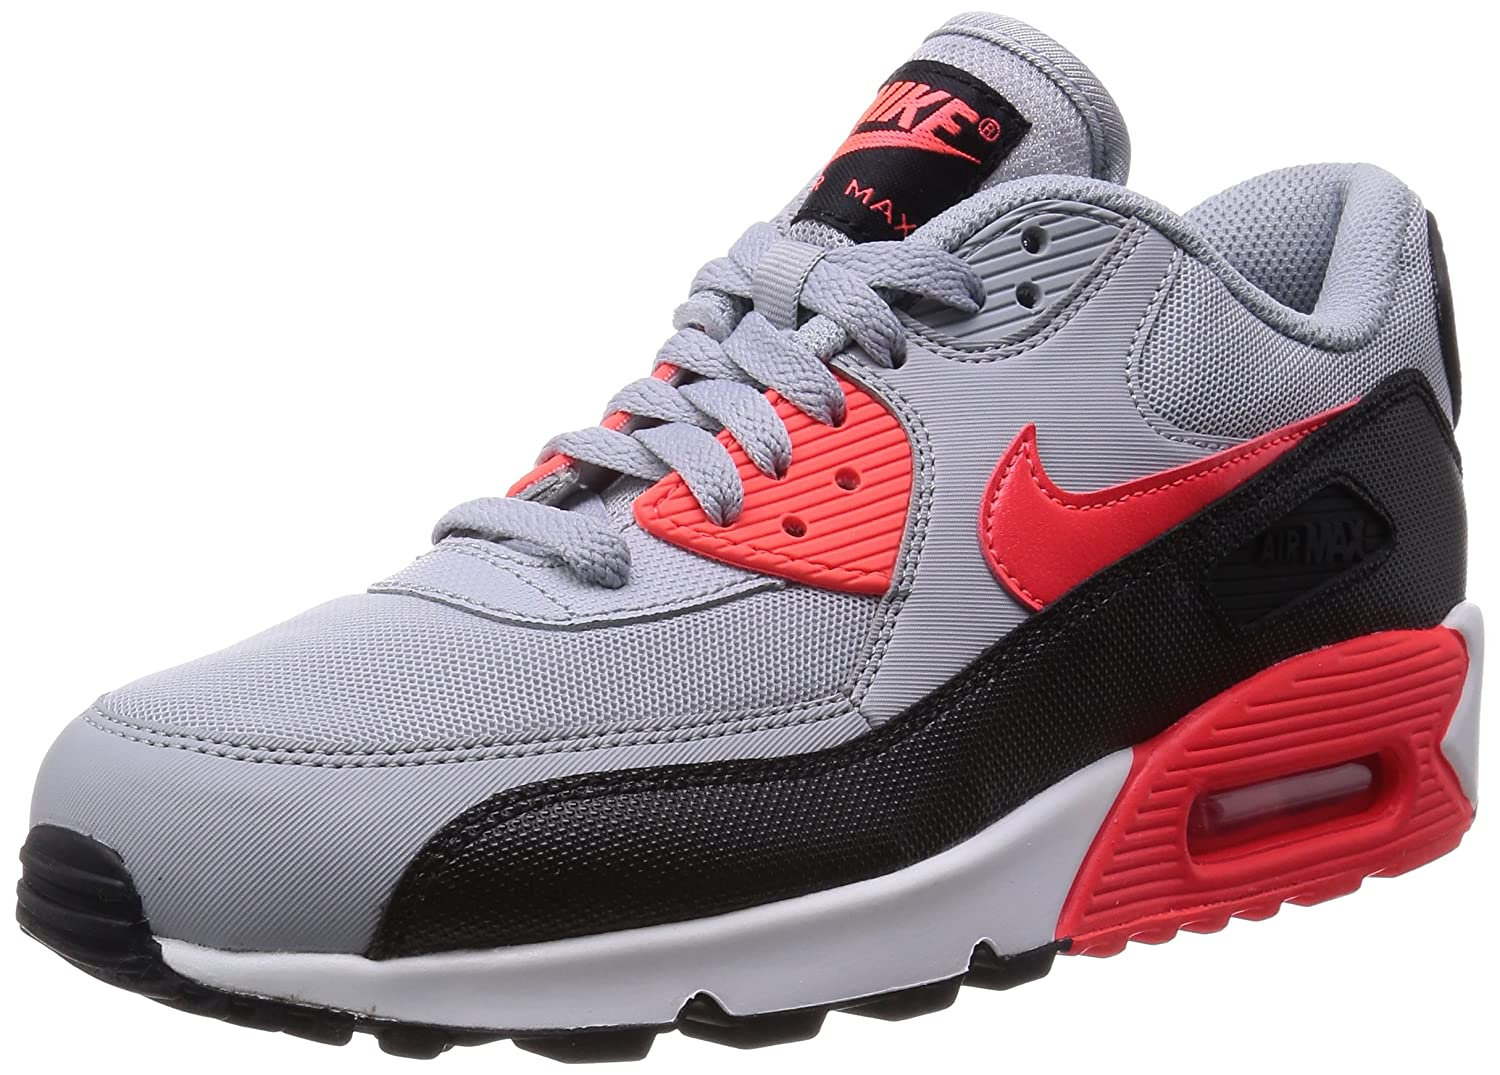 quality design 9be9e 08631 Amazon.com   Nike Women s Air Max 90 Essential Wolf  Grey Infrared Black White Running Shoe 7 Women US   Road Running